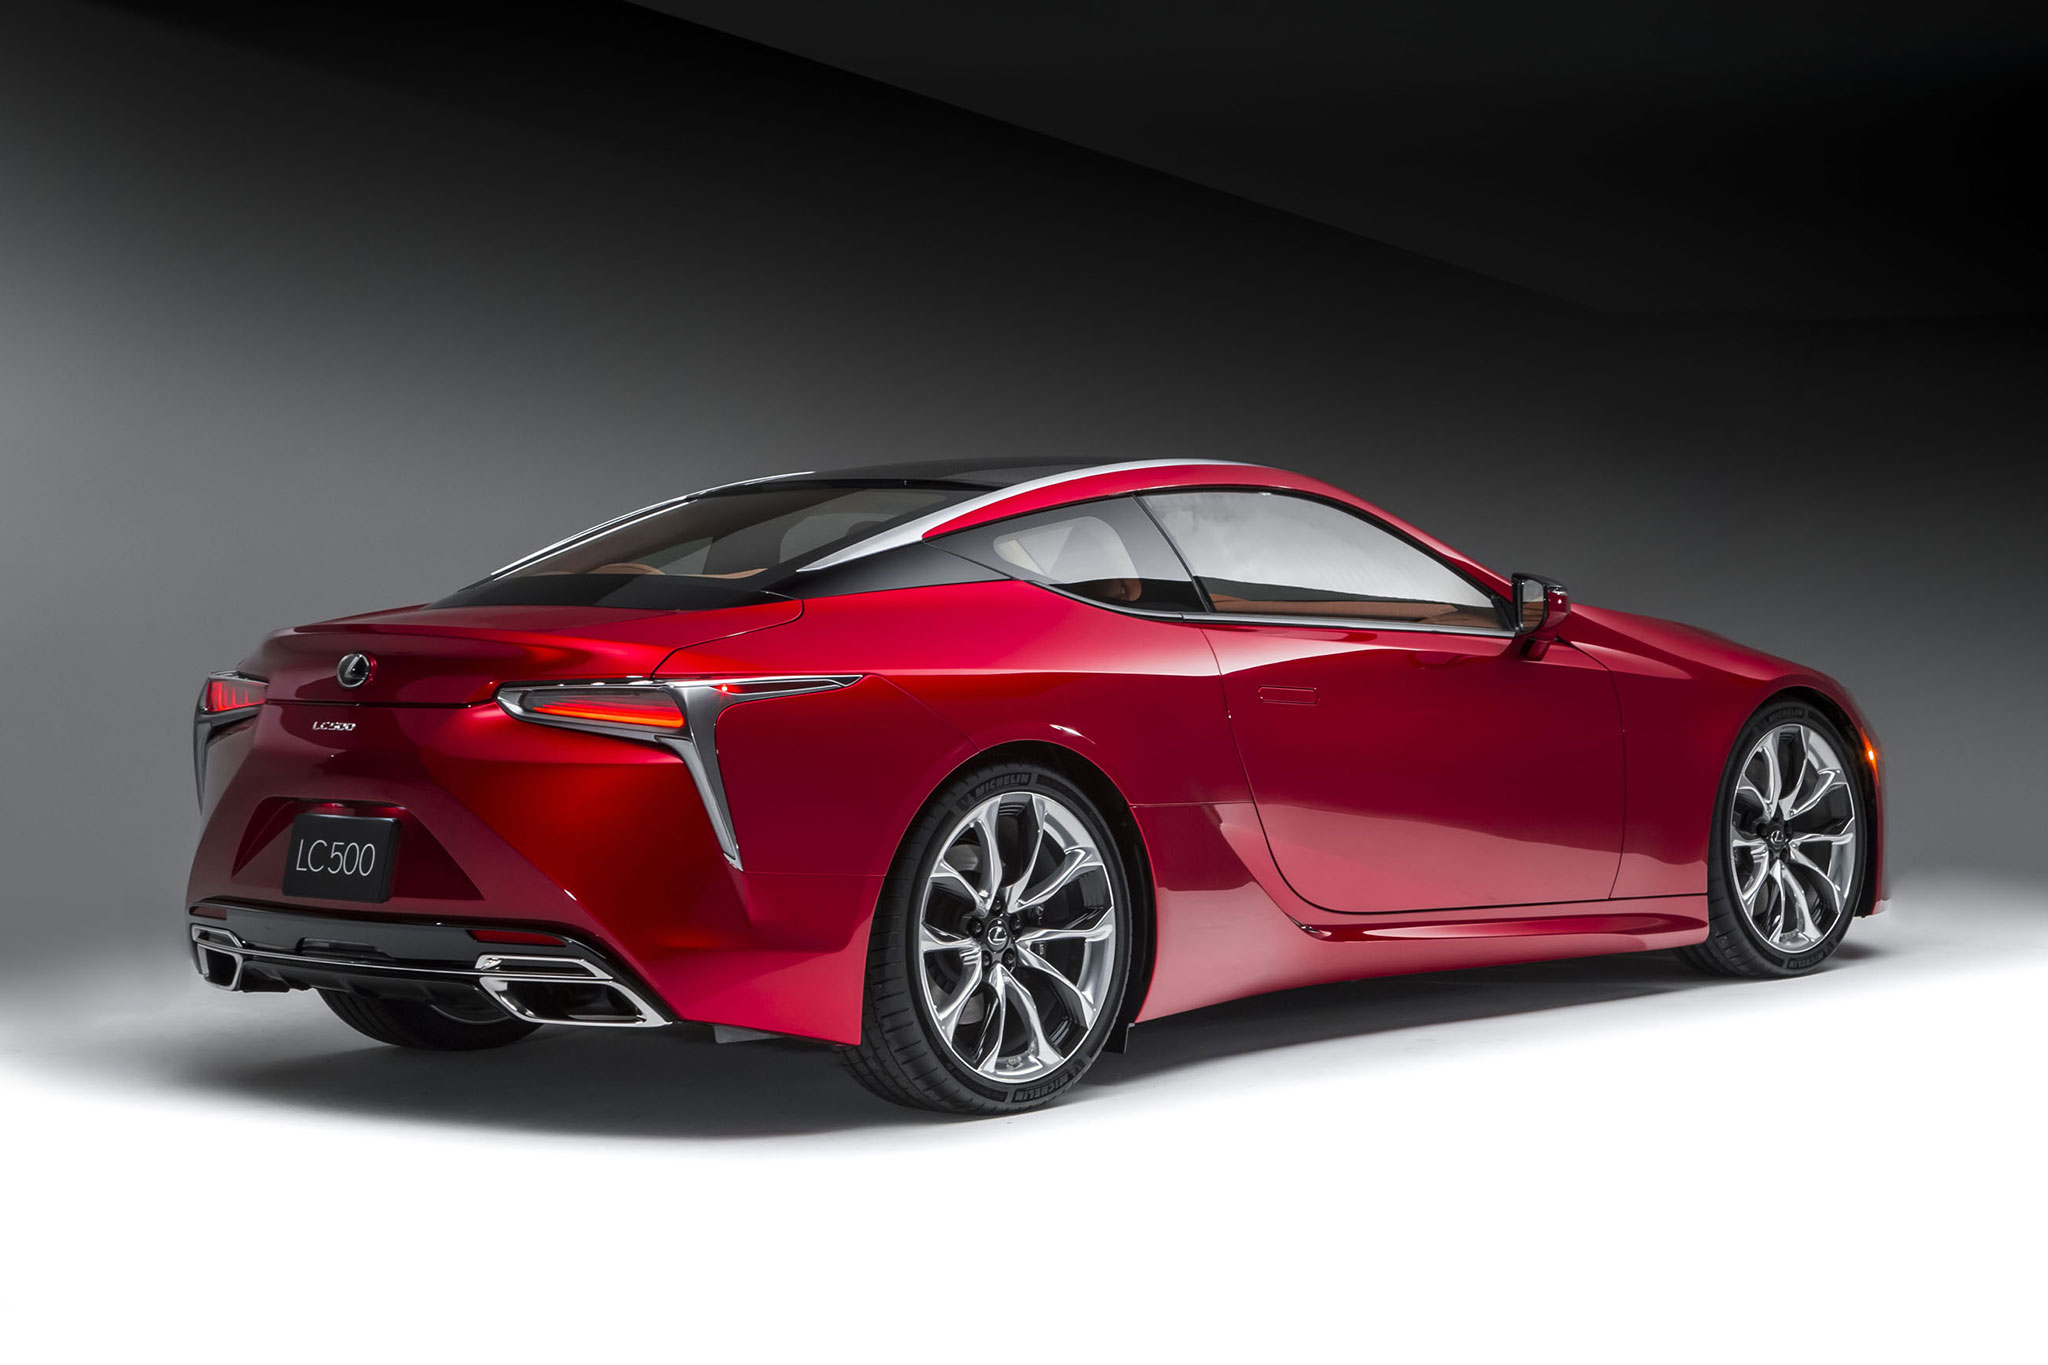 2018 Lexus LC 500 ing Next May Armed With 471 Horsepower